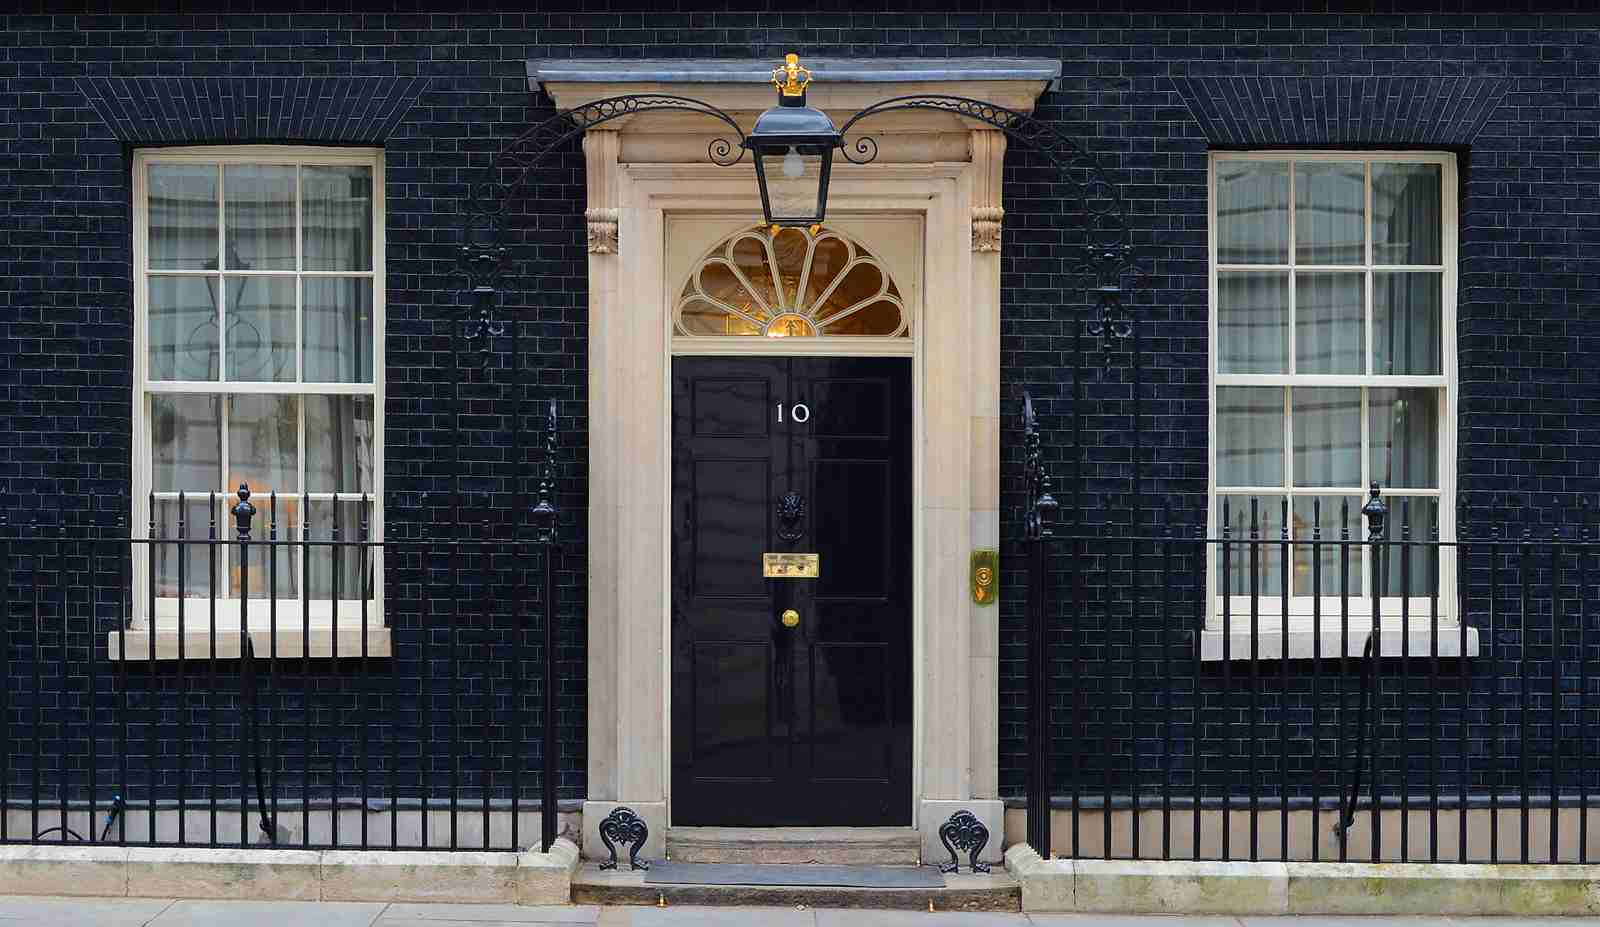 10 Downing Street, SW1, London.